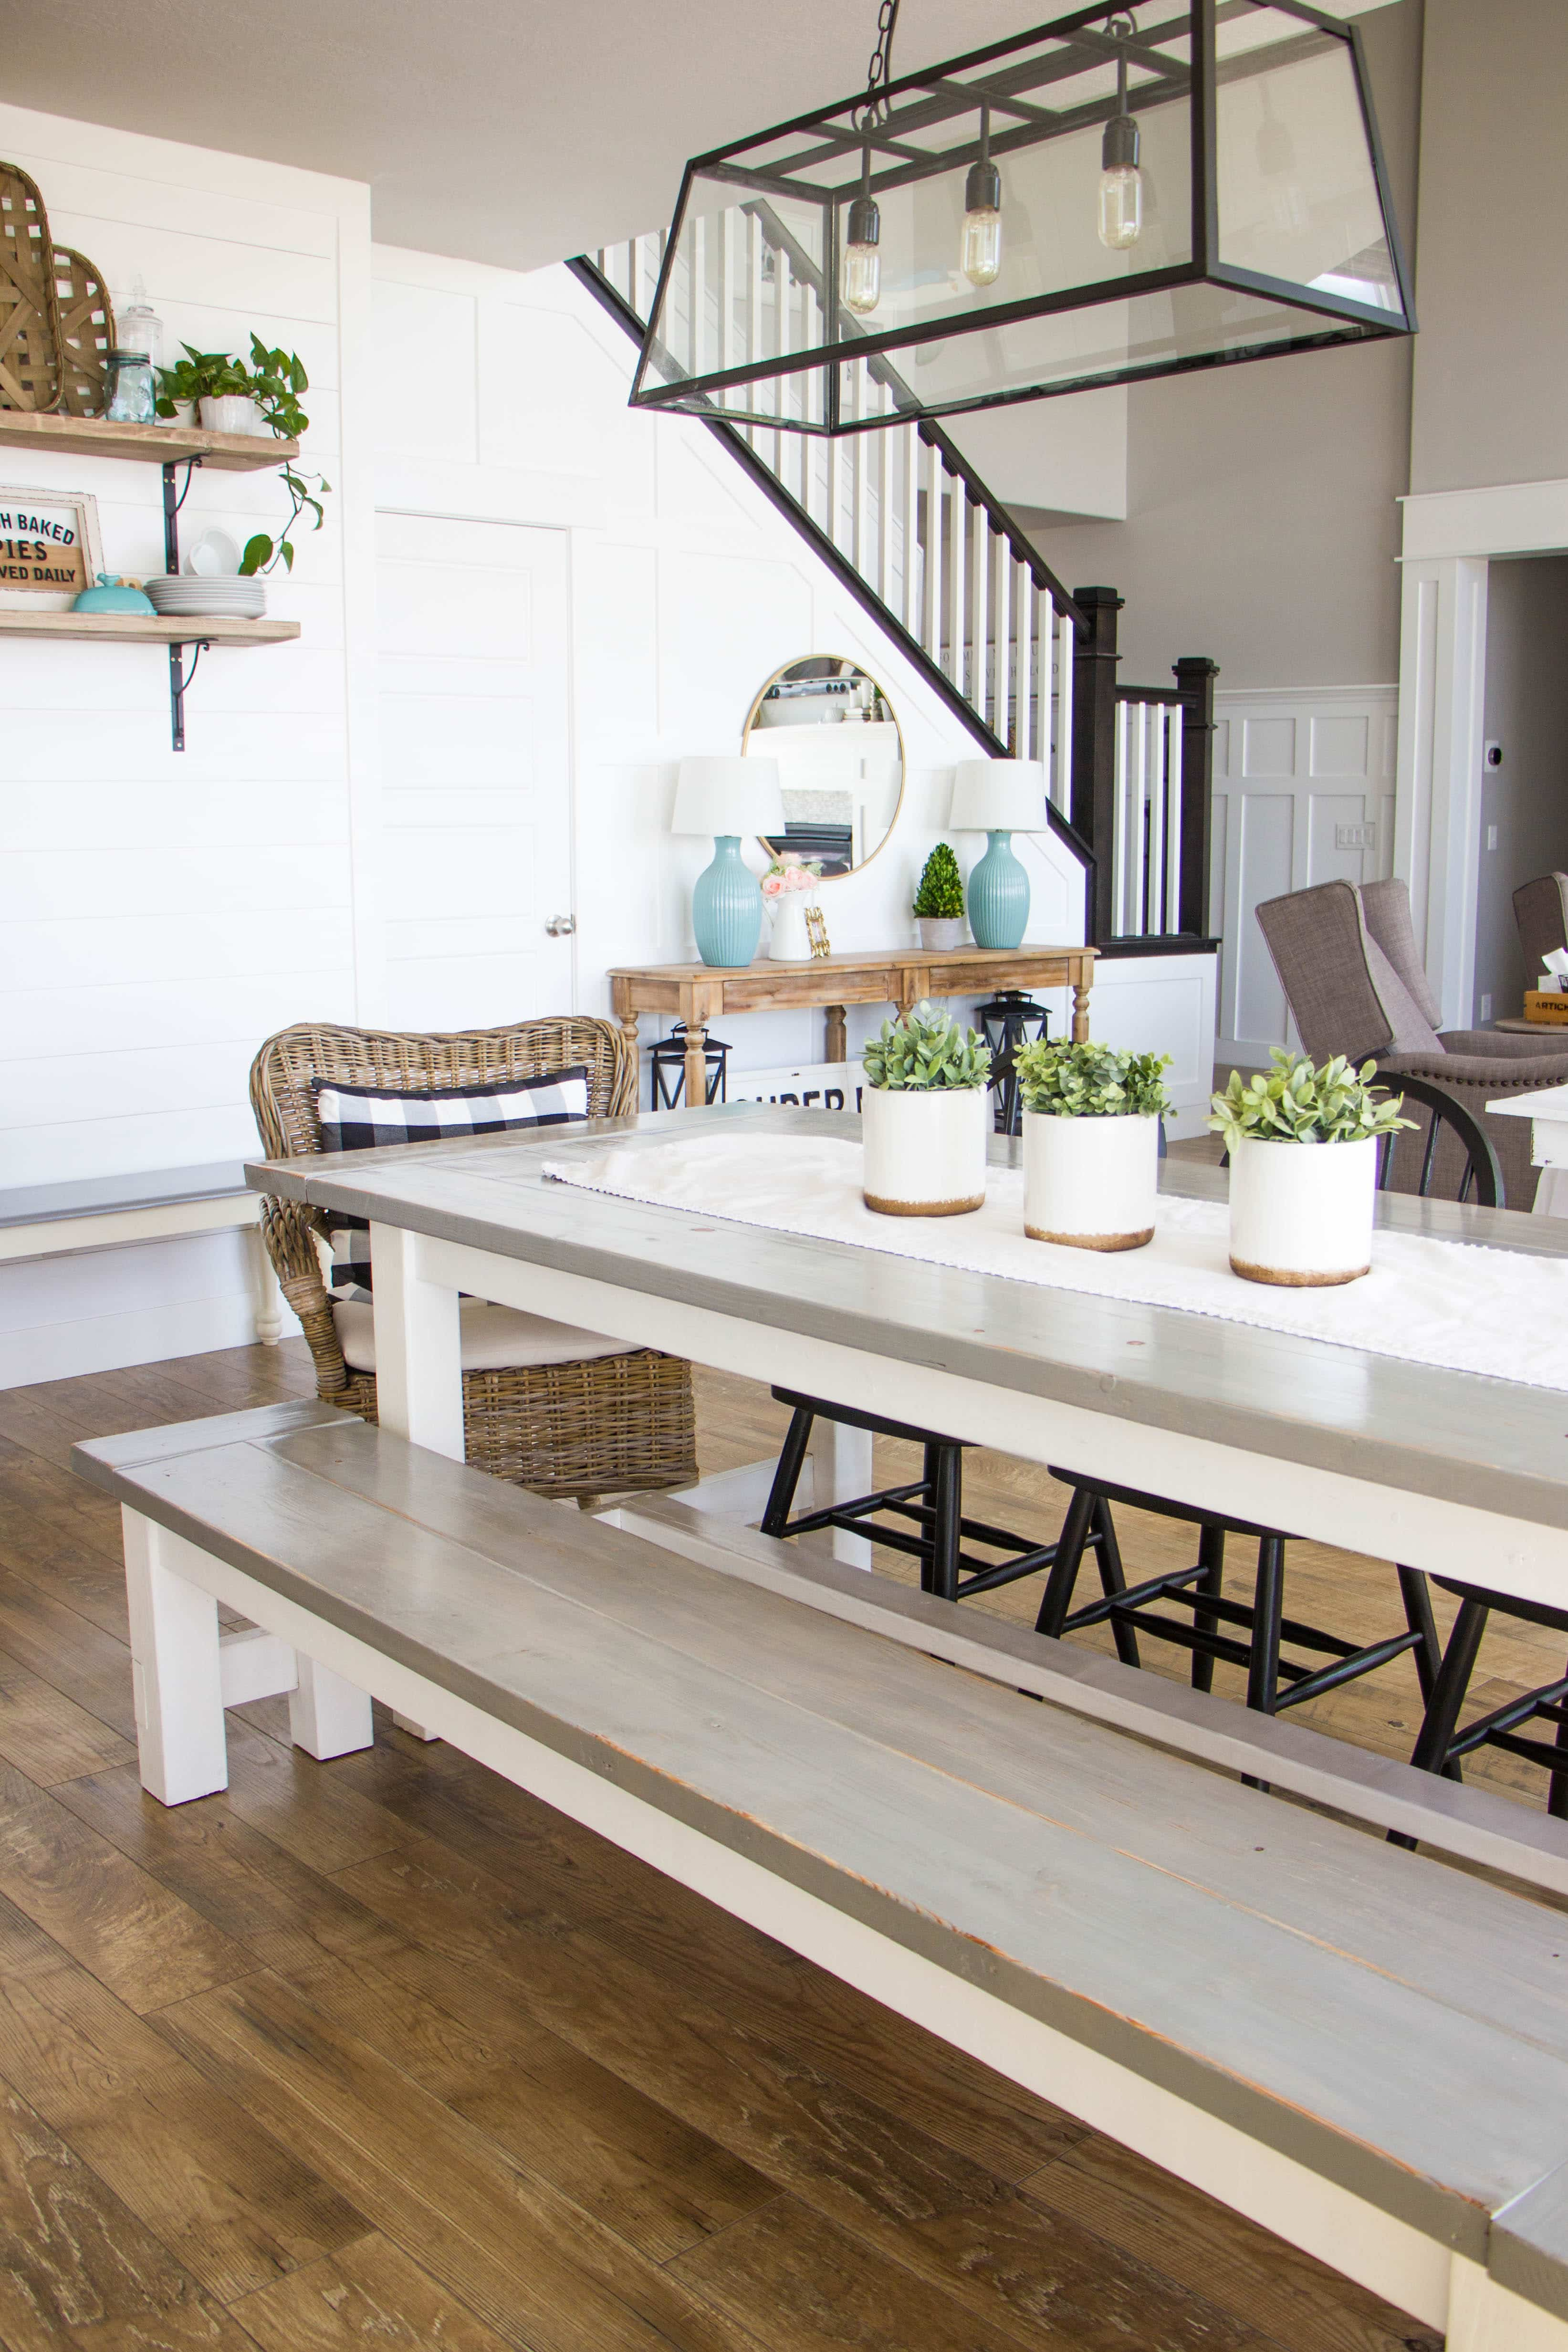 10 Ways To Add Farmhouse Style To Your Space Honeybear Lane